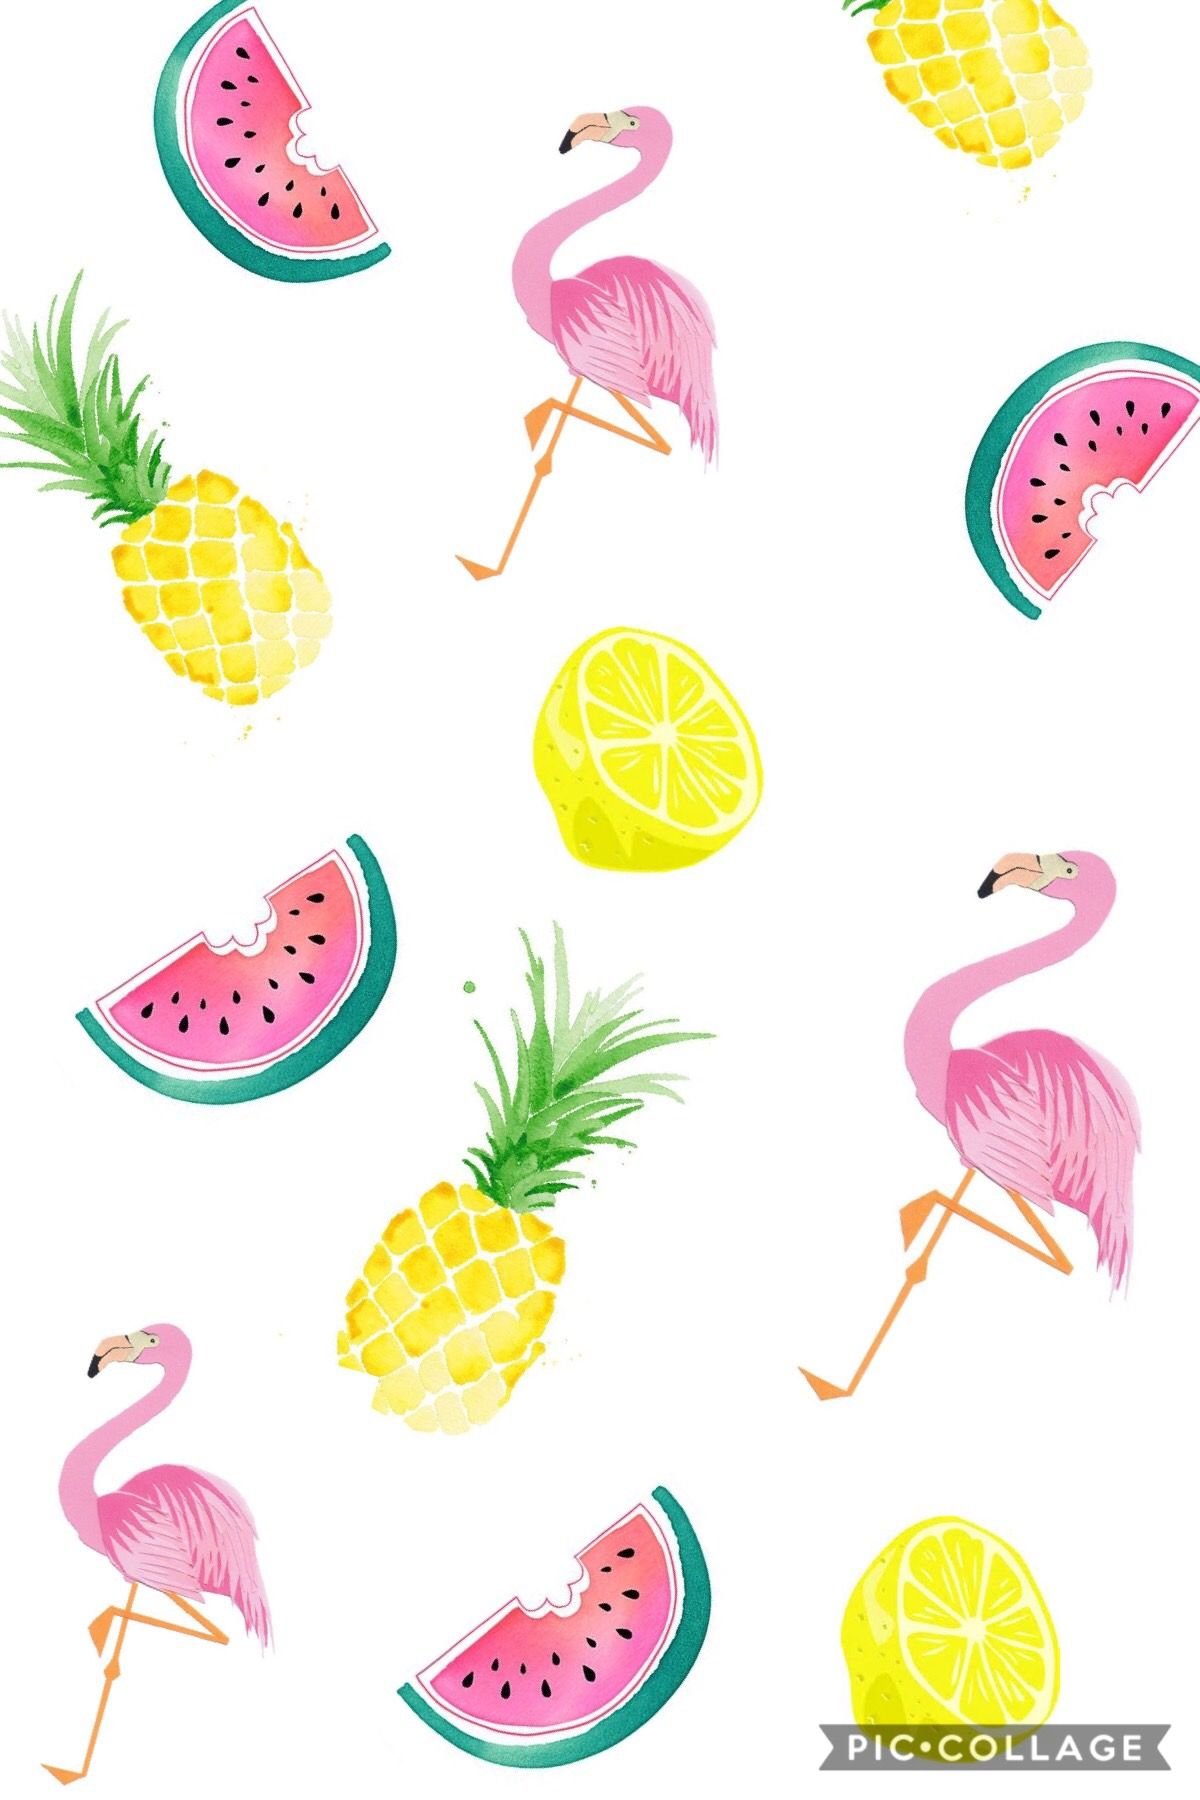 Pin By Candace Brockman On Blush N Beauty Boutique Pineapple Wallpaper Flamingo Wallpaper Summer Wallpaper